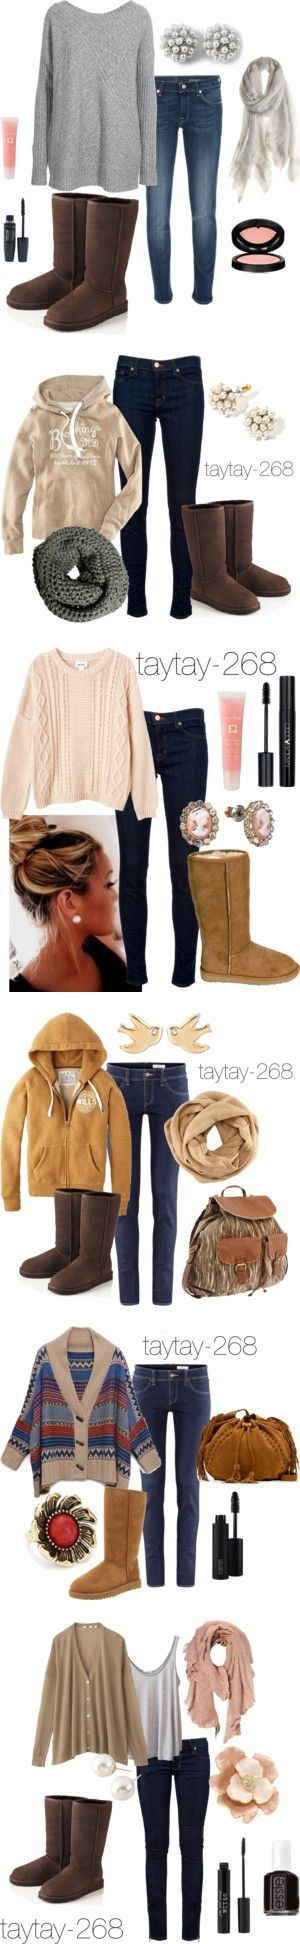 """Uggs Are Uhh-Mazing"" by taytay-268 on Polyvore 